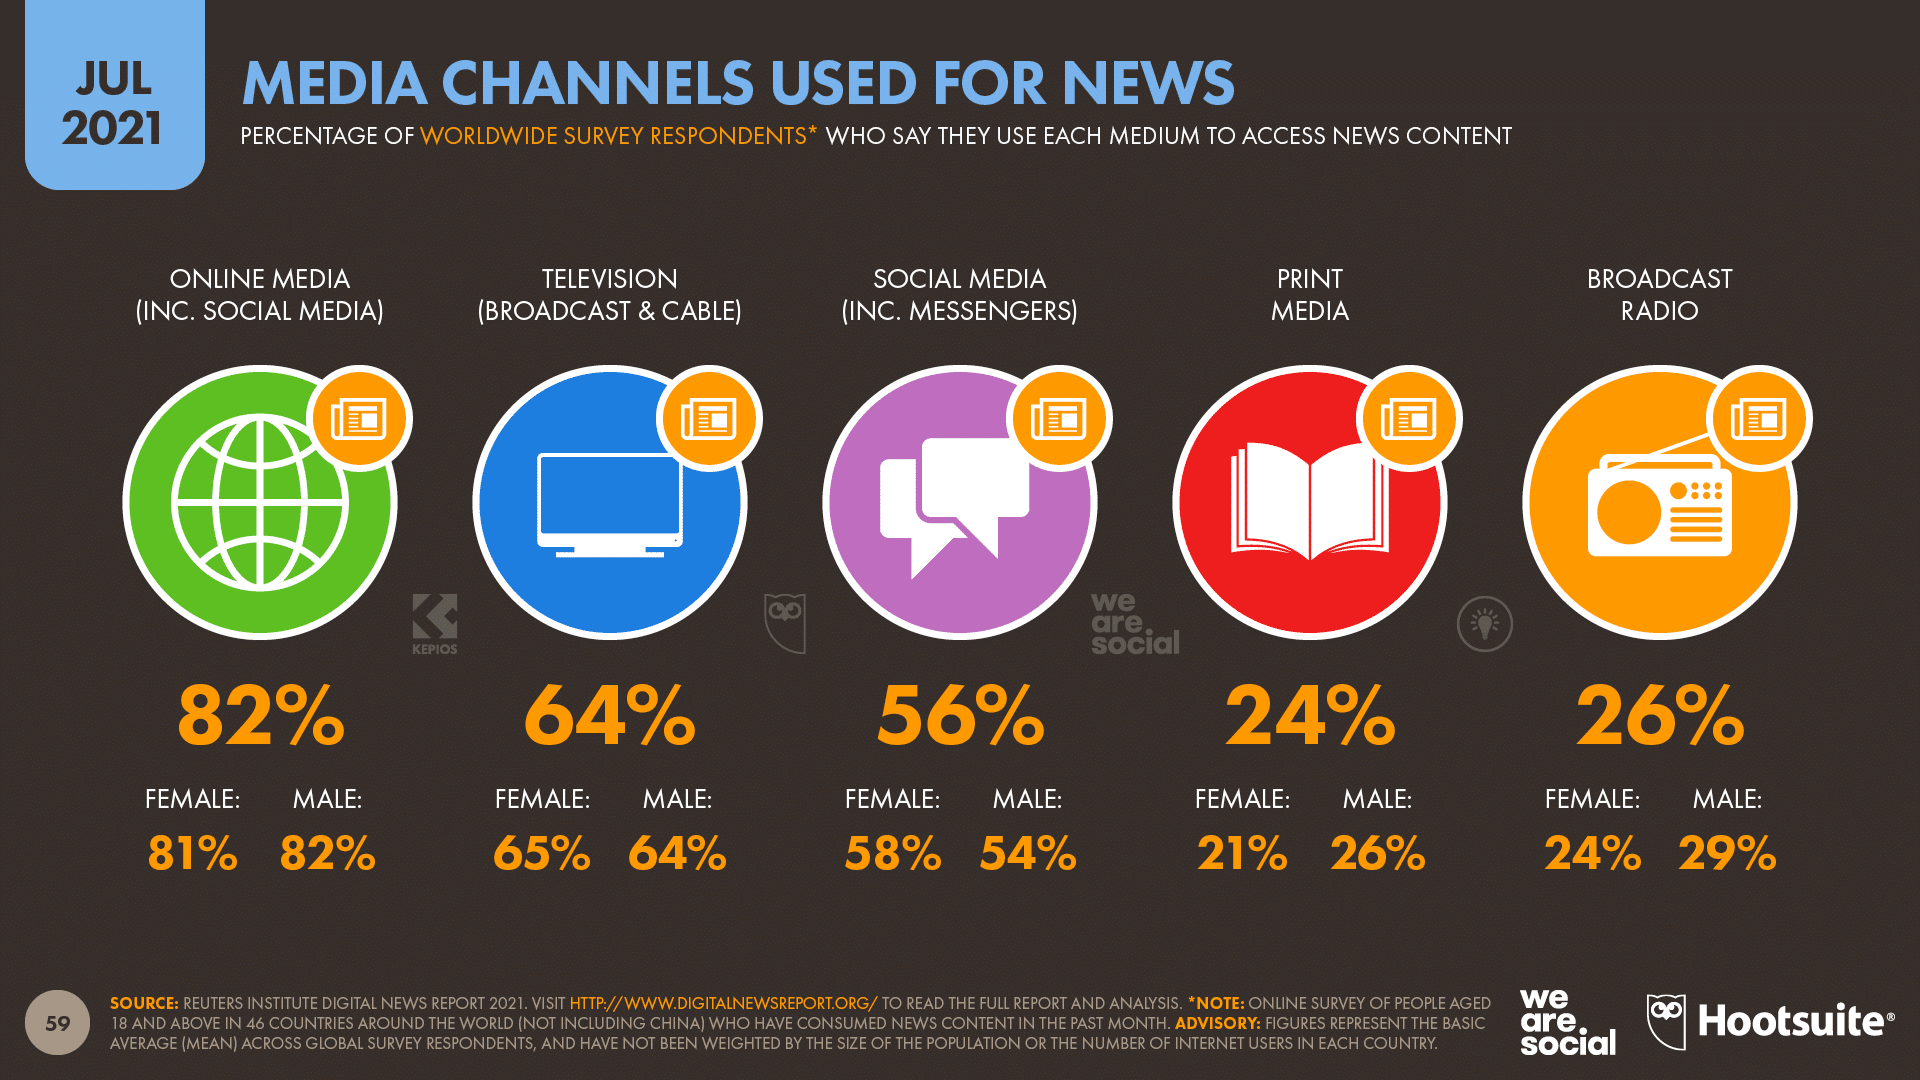 chart showing media channels used for news as of July 2021